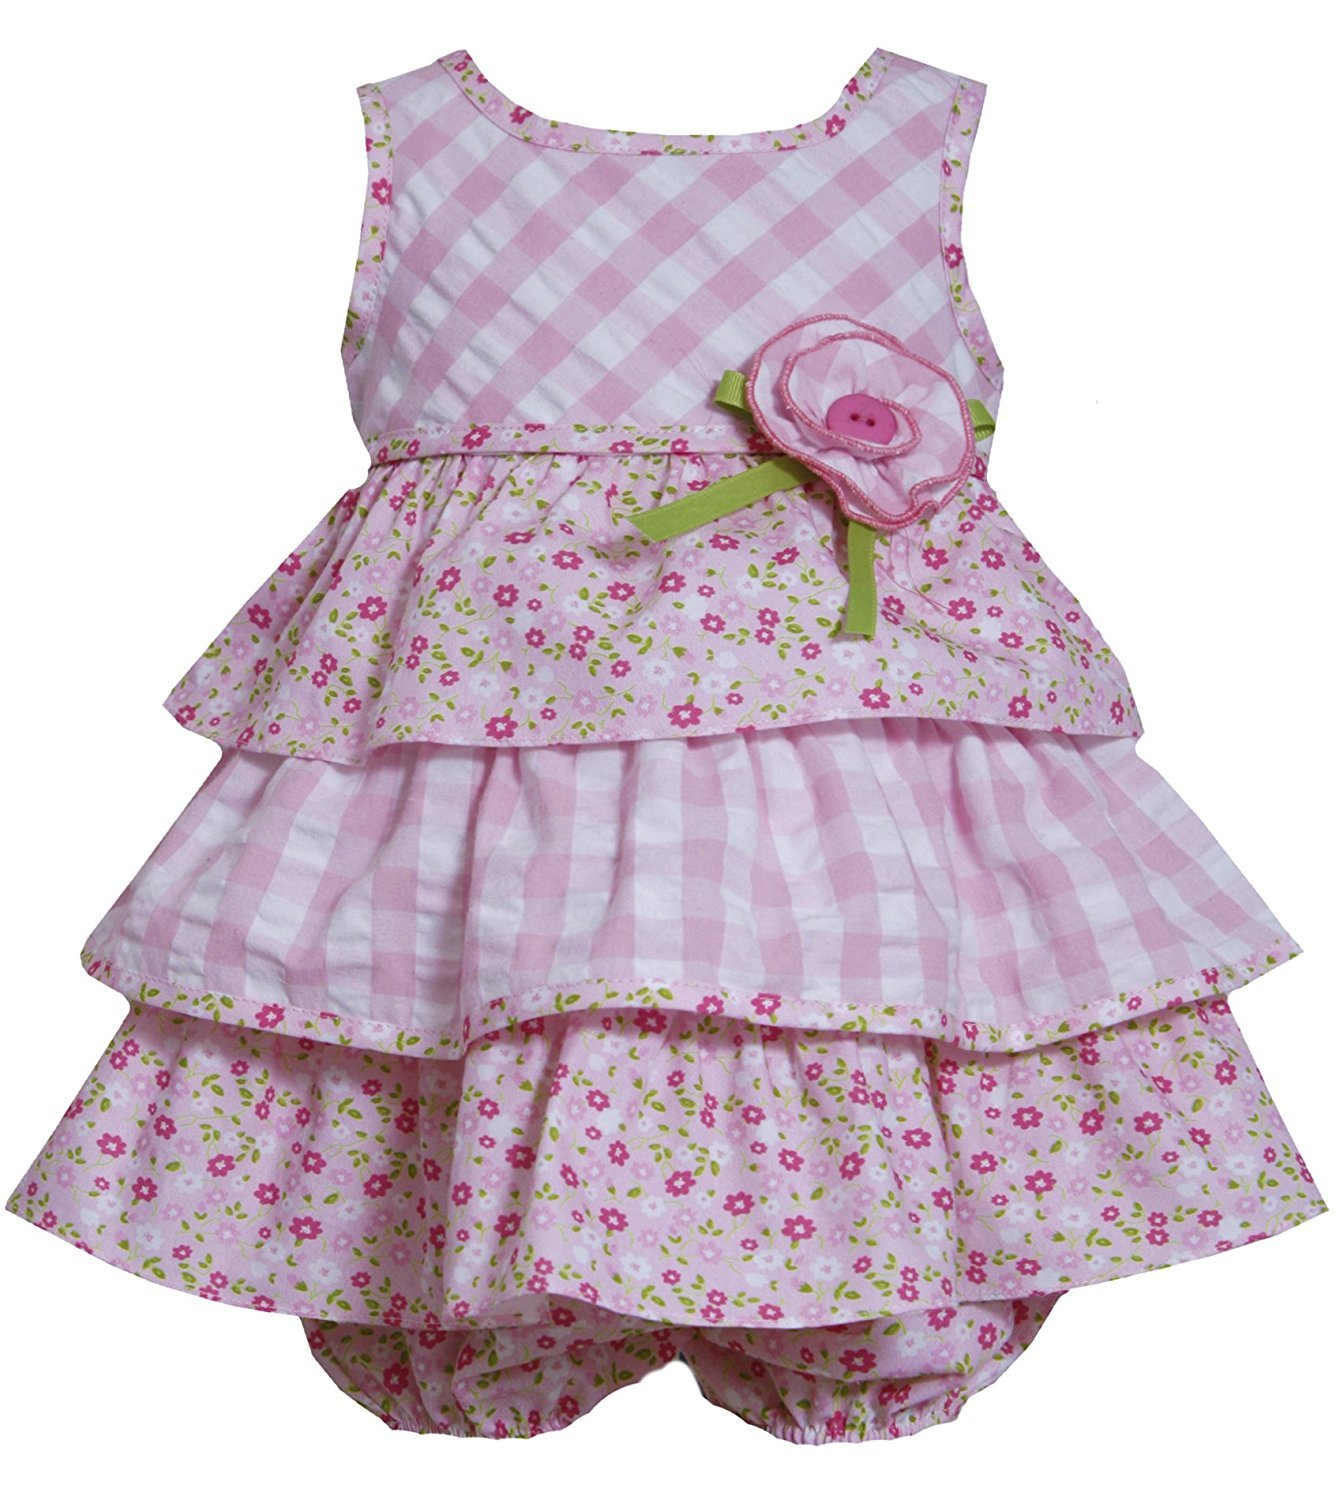 Bonnie Jean Baby Girl 12M-24M Pink White Check Floral Mix Print Tier Dress